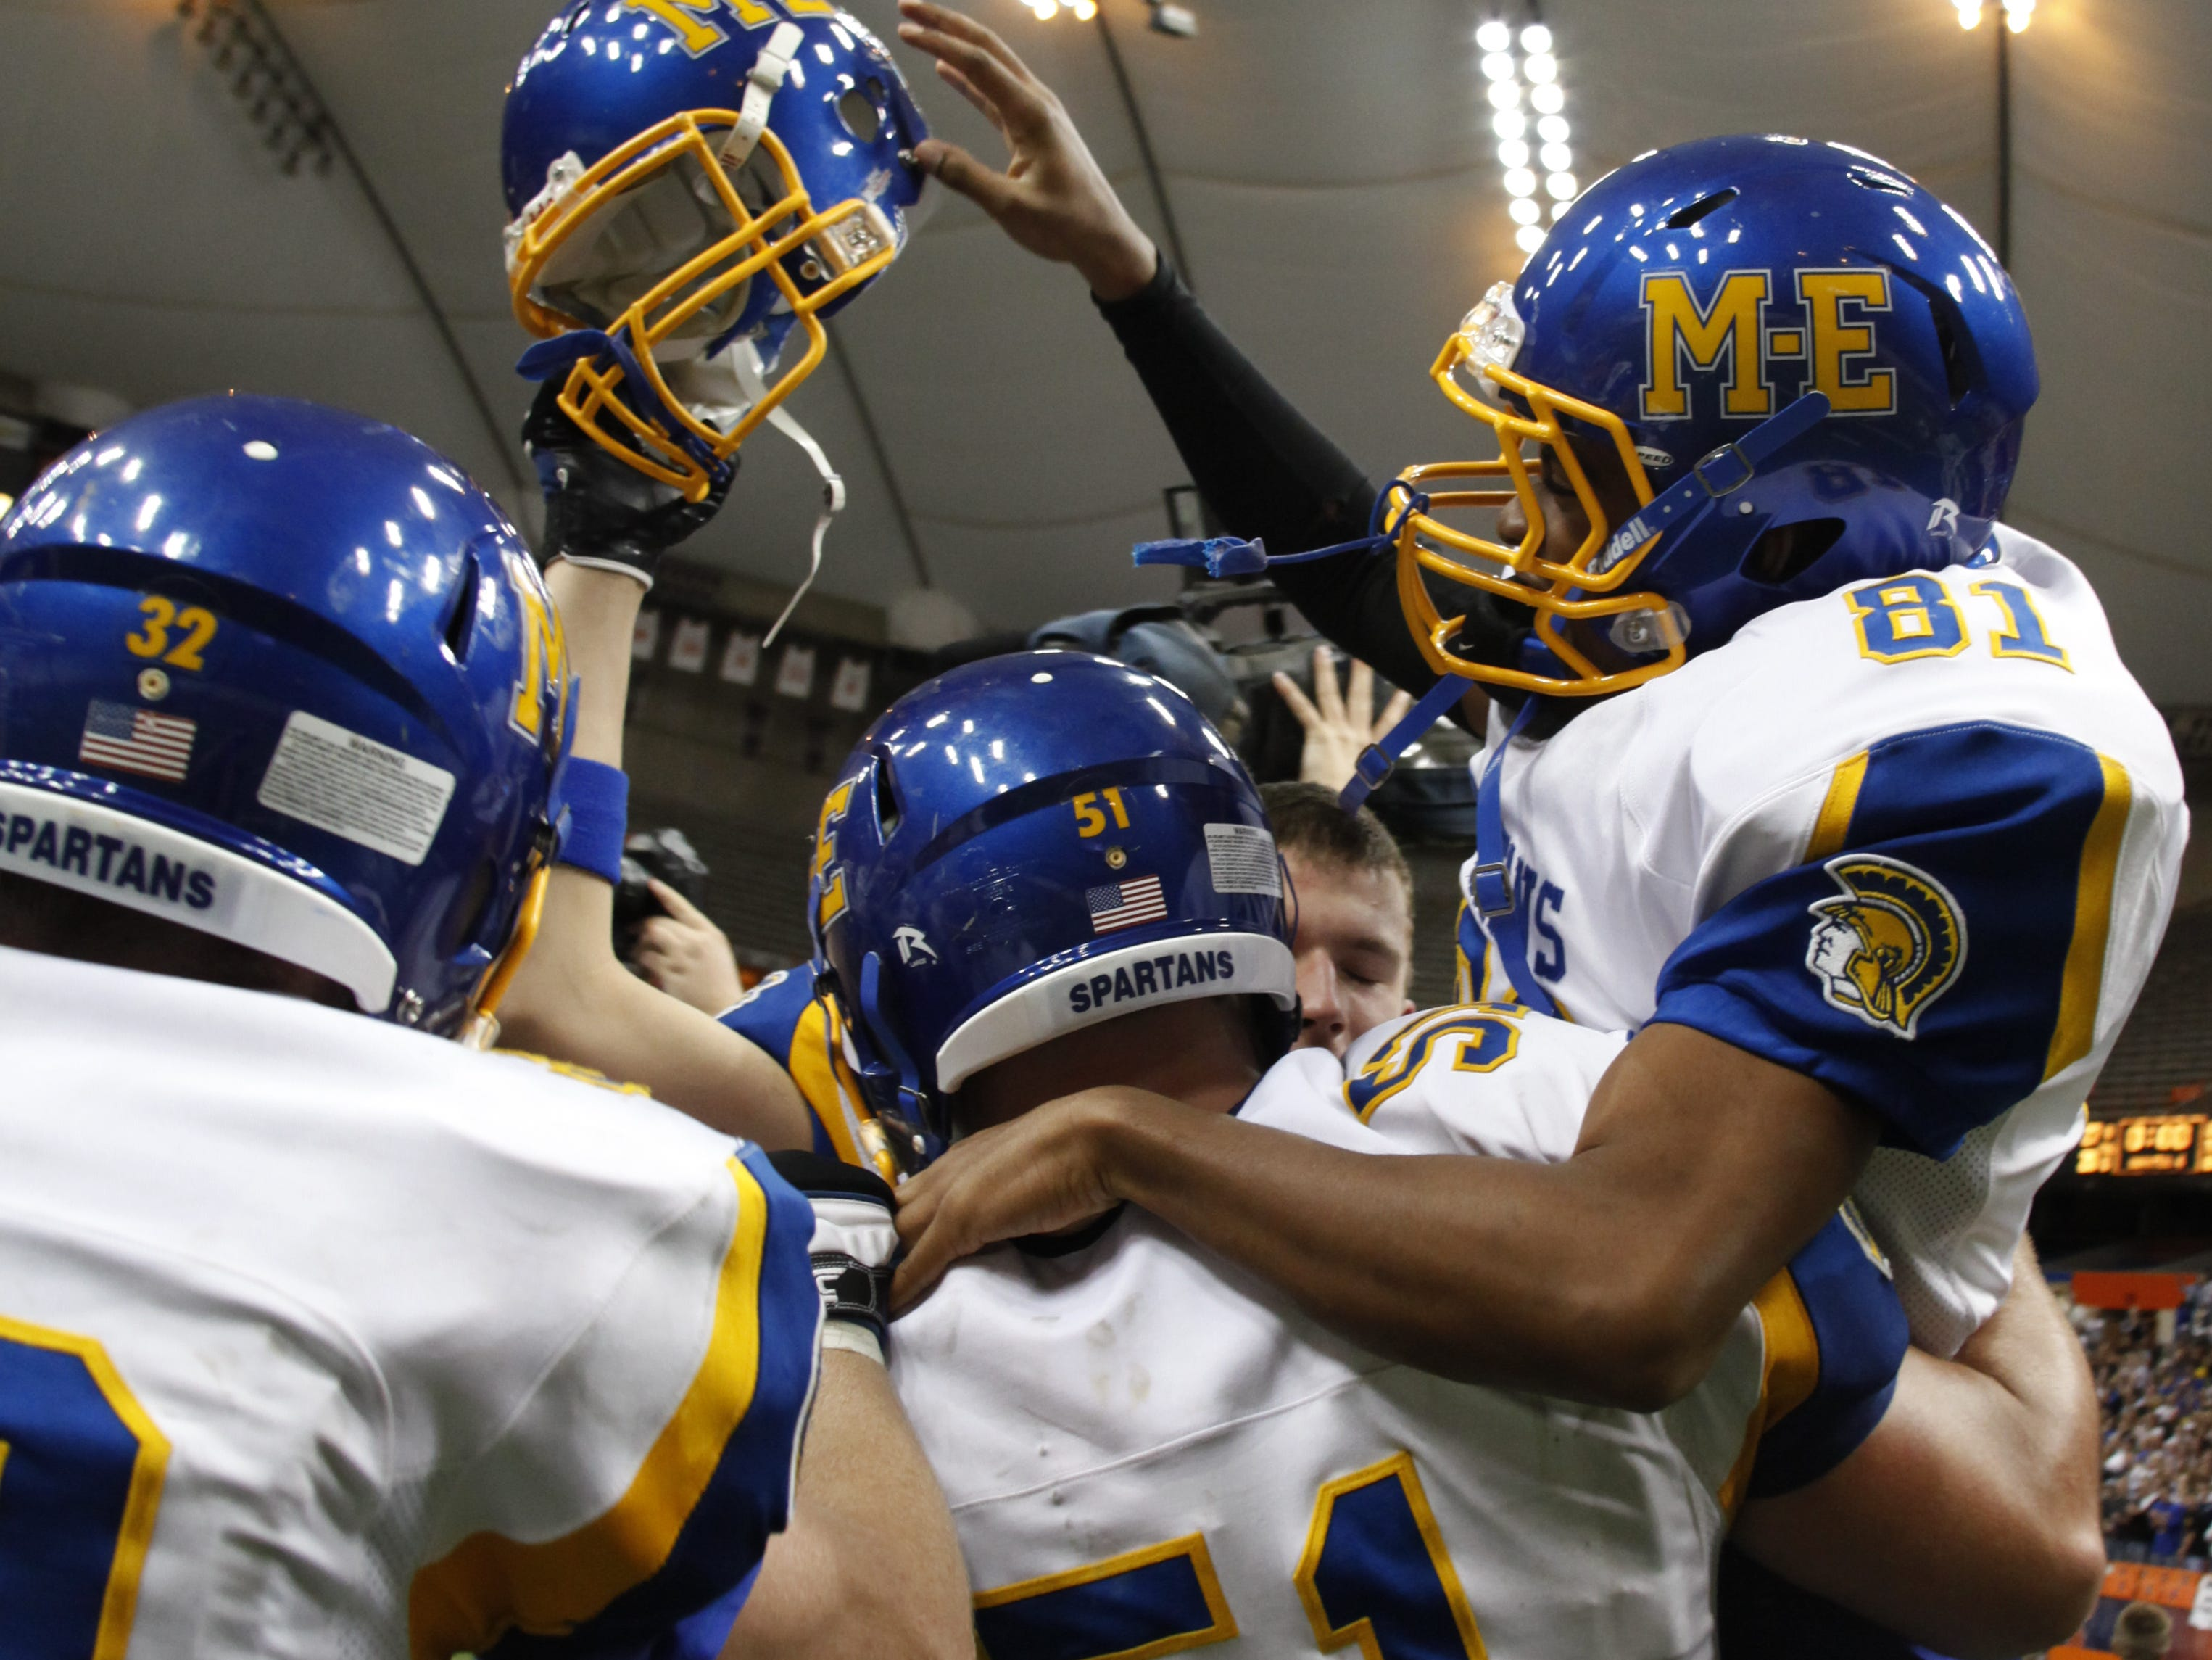 The Maine-Endwell Spartans defeat the Burnt Hills-Ballston Lake Spartans 27-20 at the Class A New York State High School Football Championship held in Syracuse's Carrier Dome.